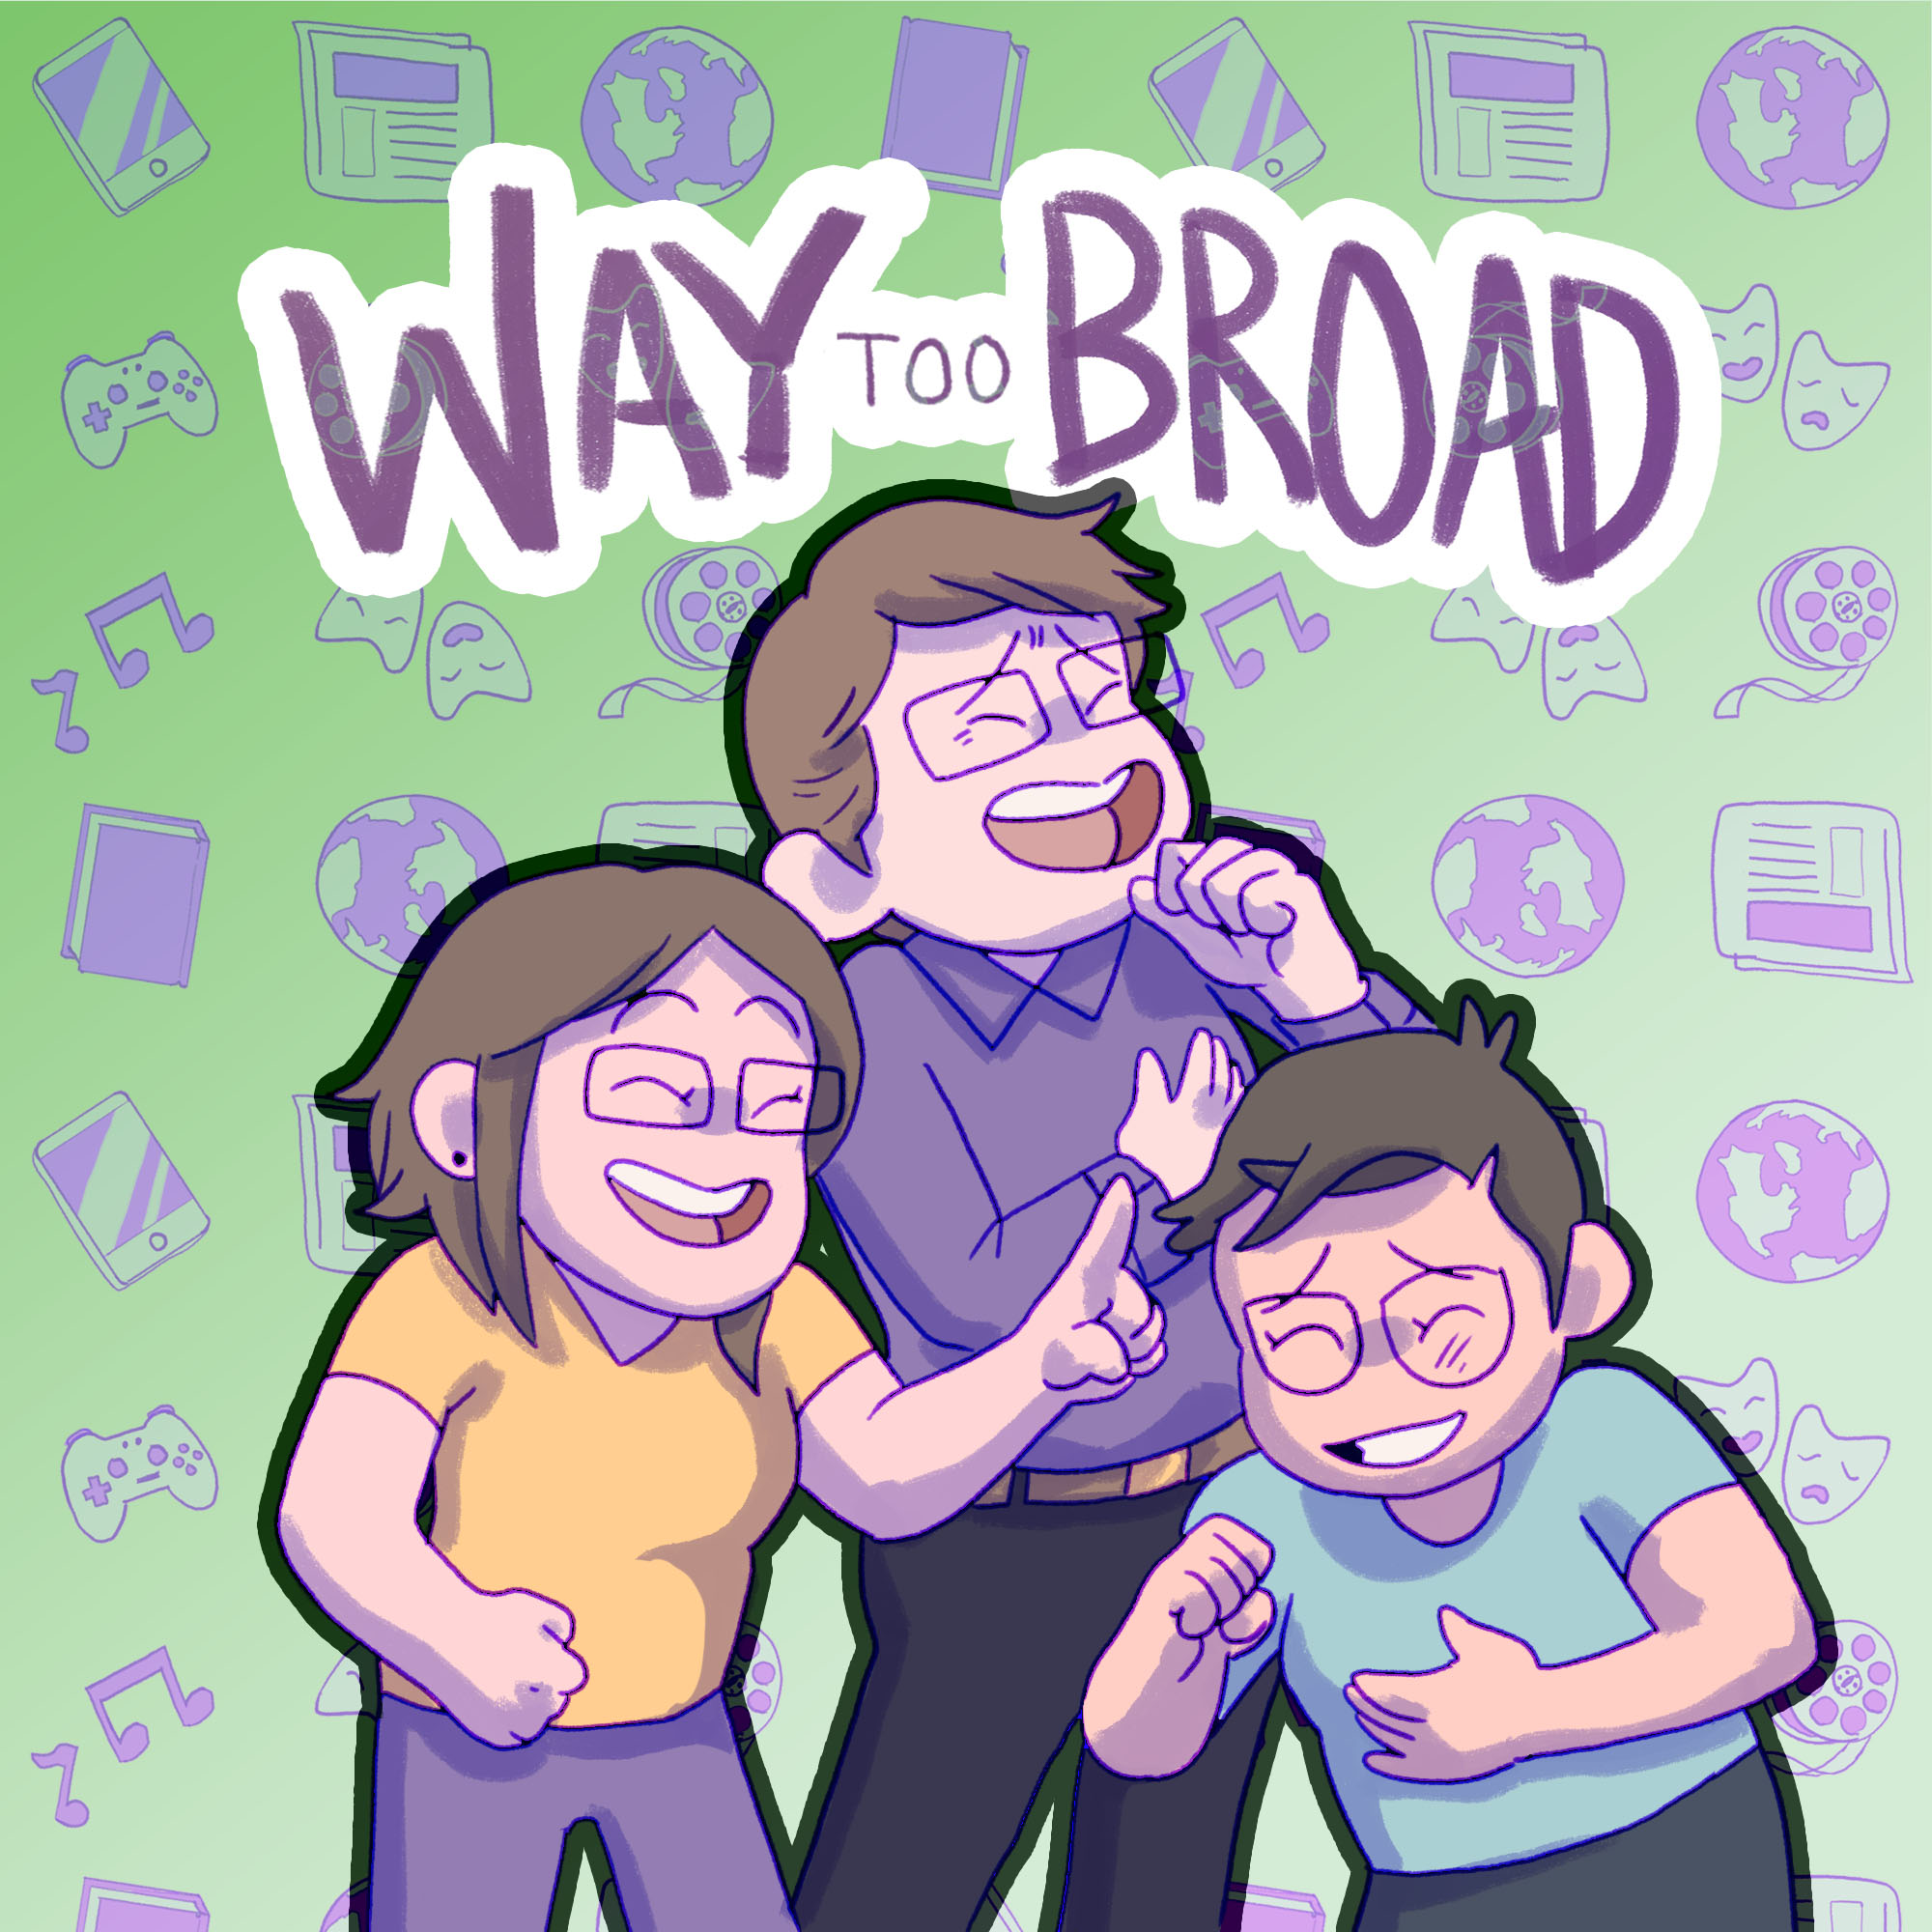 95: Way Too Brief- Way Too Broad Shorty